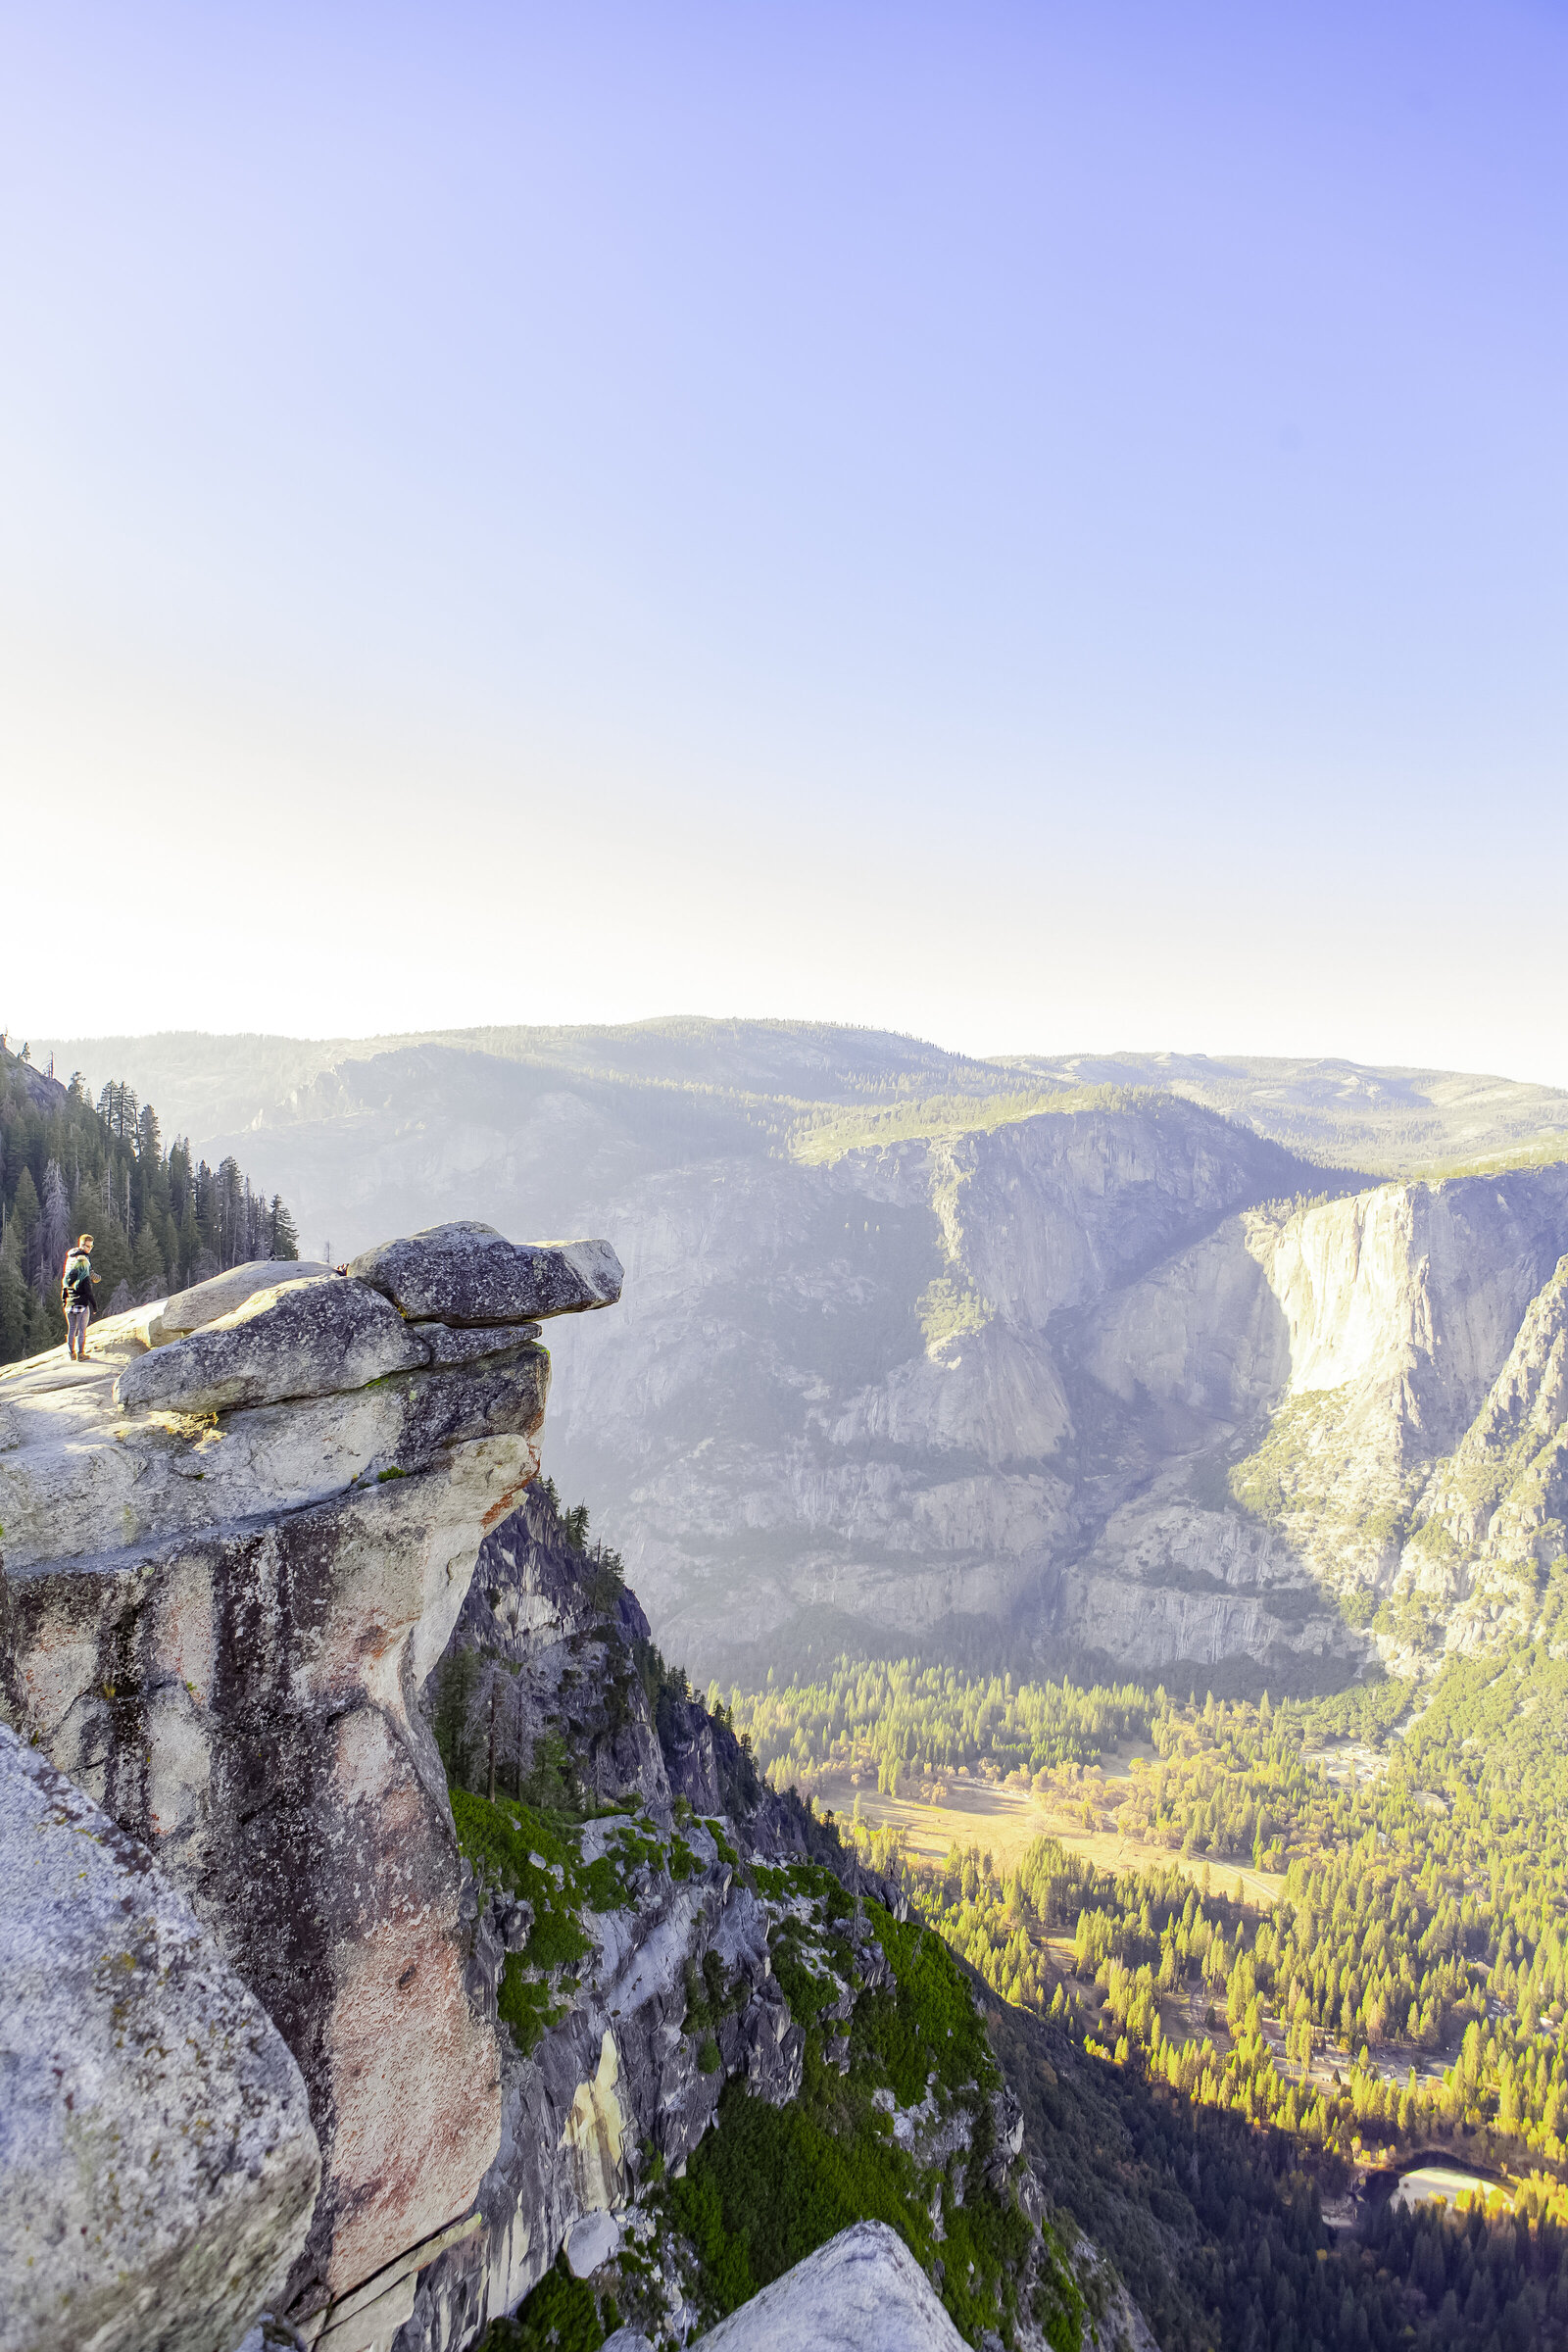 083-KBP-Yosemite-National-Park-006